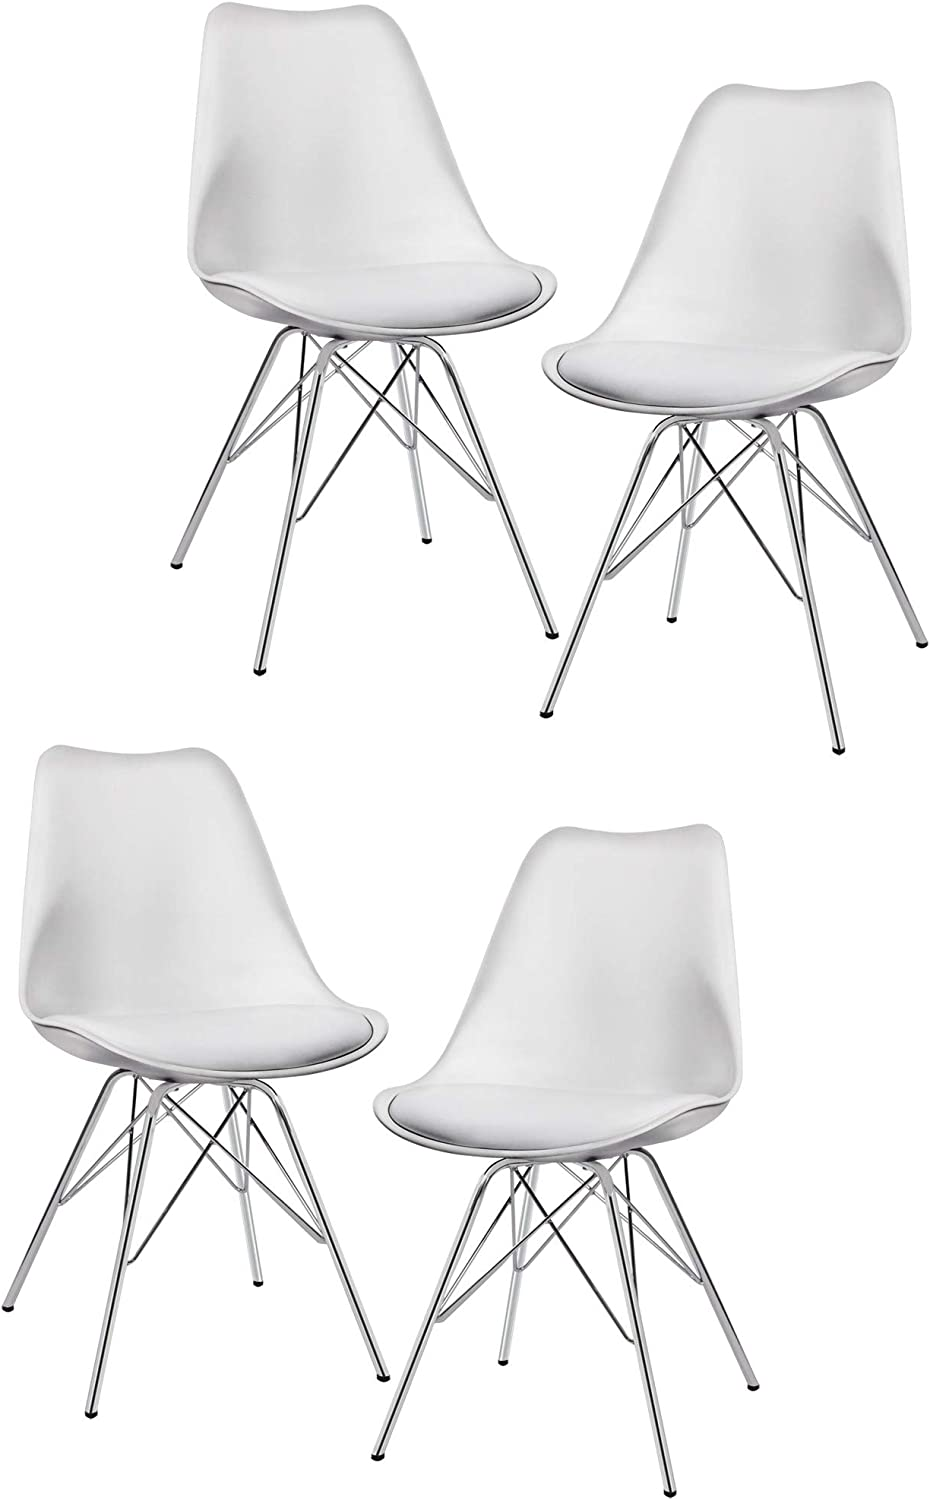 Duhome Dining Chairs Set of 4 White Plastic Chairs with Faux Leather Seat Cushion Retro Design 518J